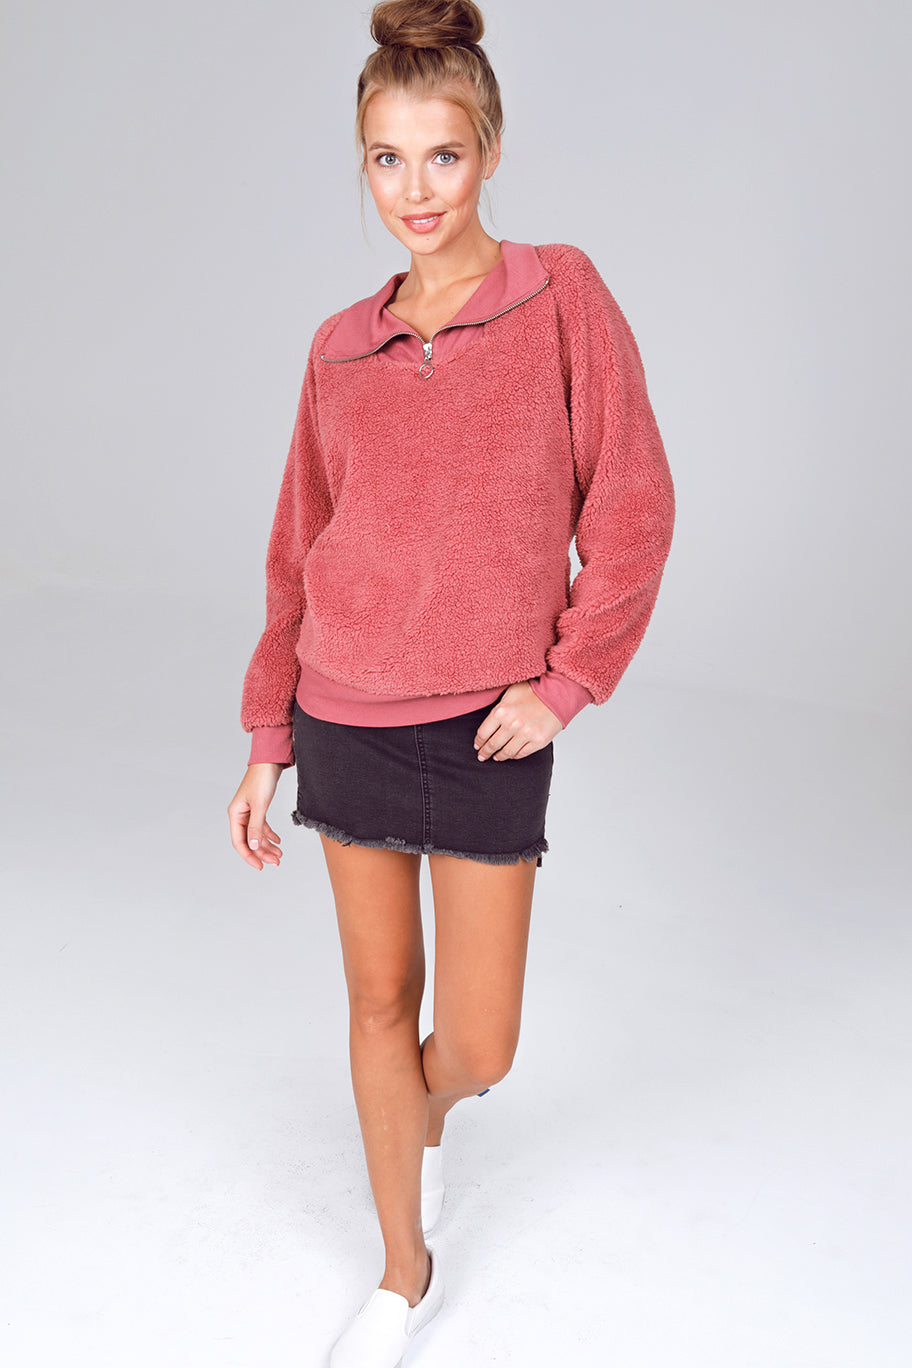 Gypsies & Moondust Quarter Zip Sherpa Pullover in Whiskey Rose